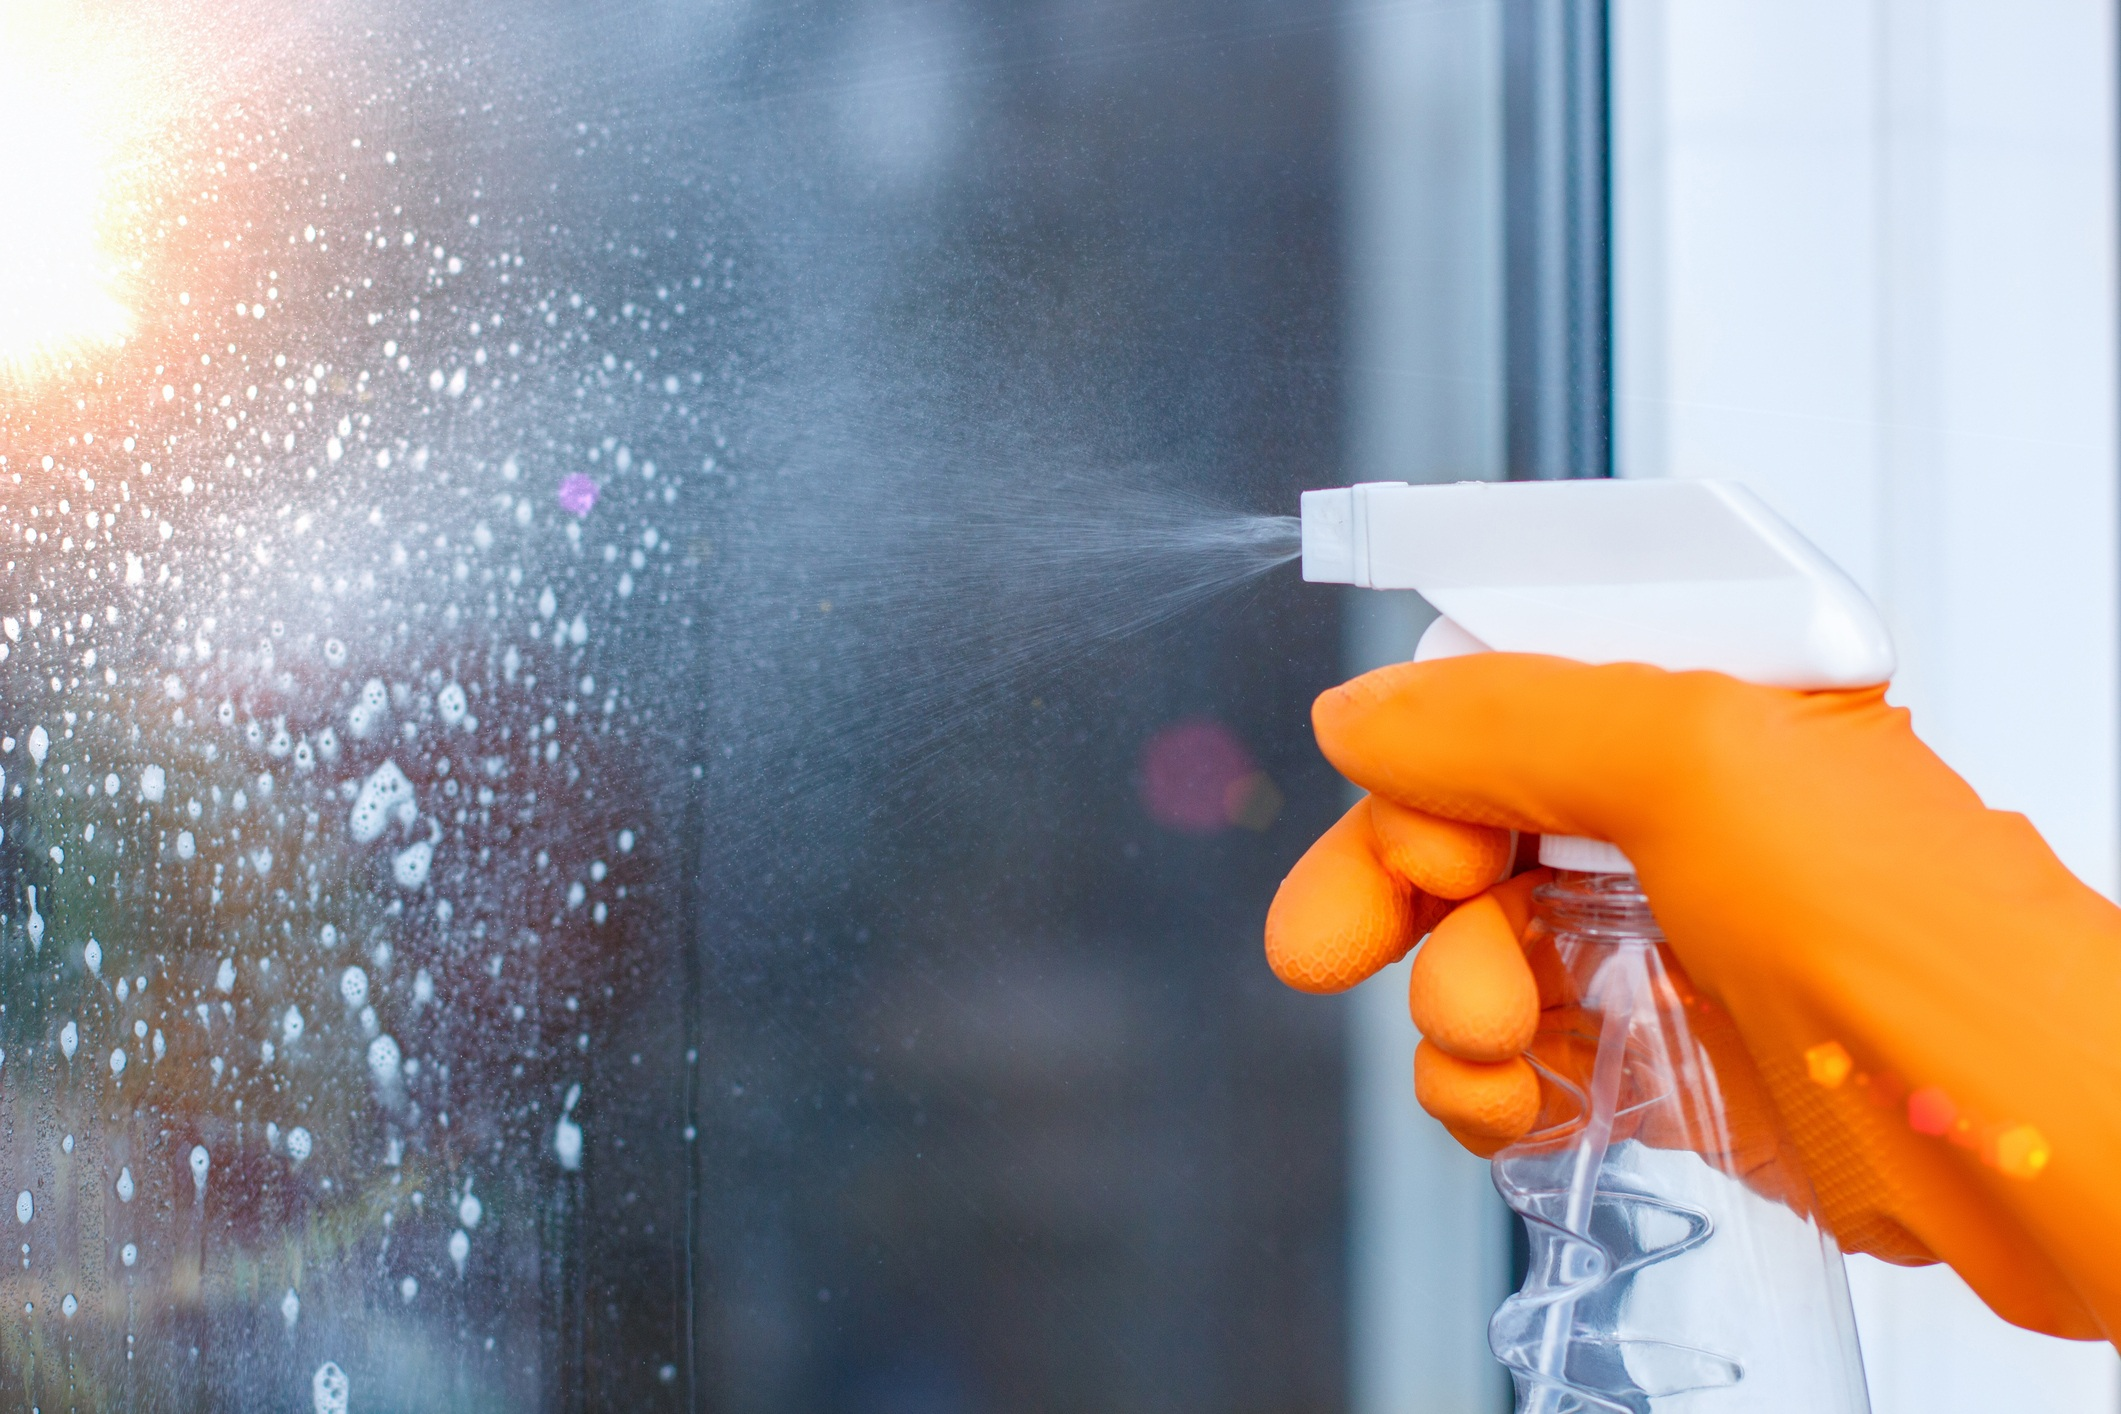 Cleaning glass or shower with a spray bottle